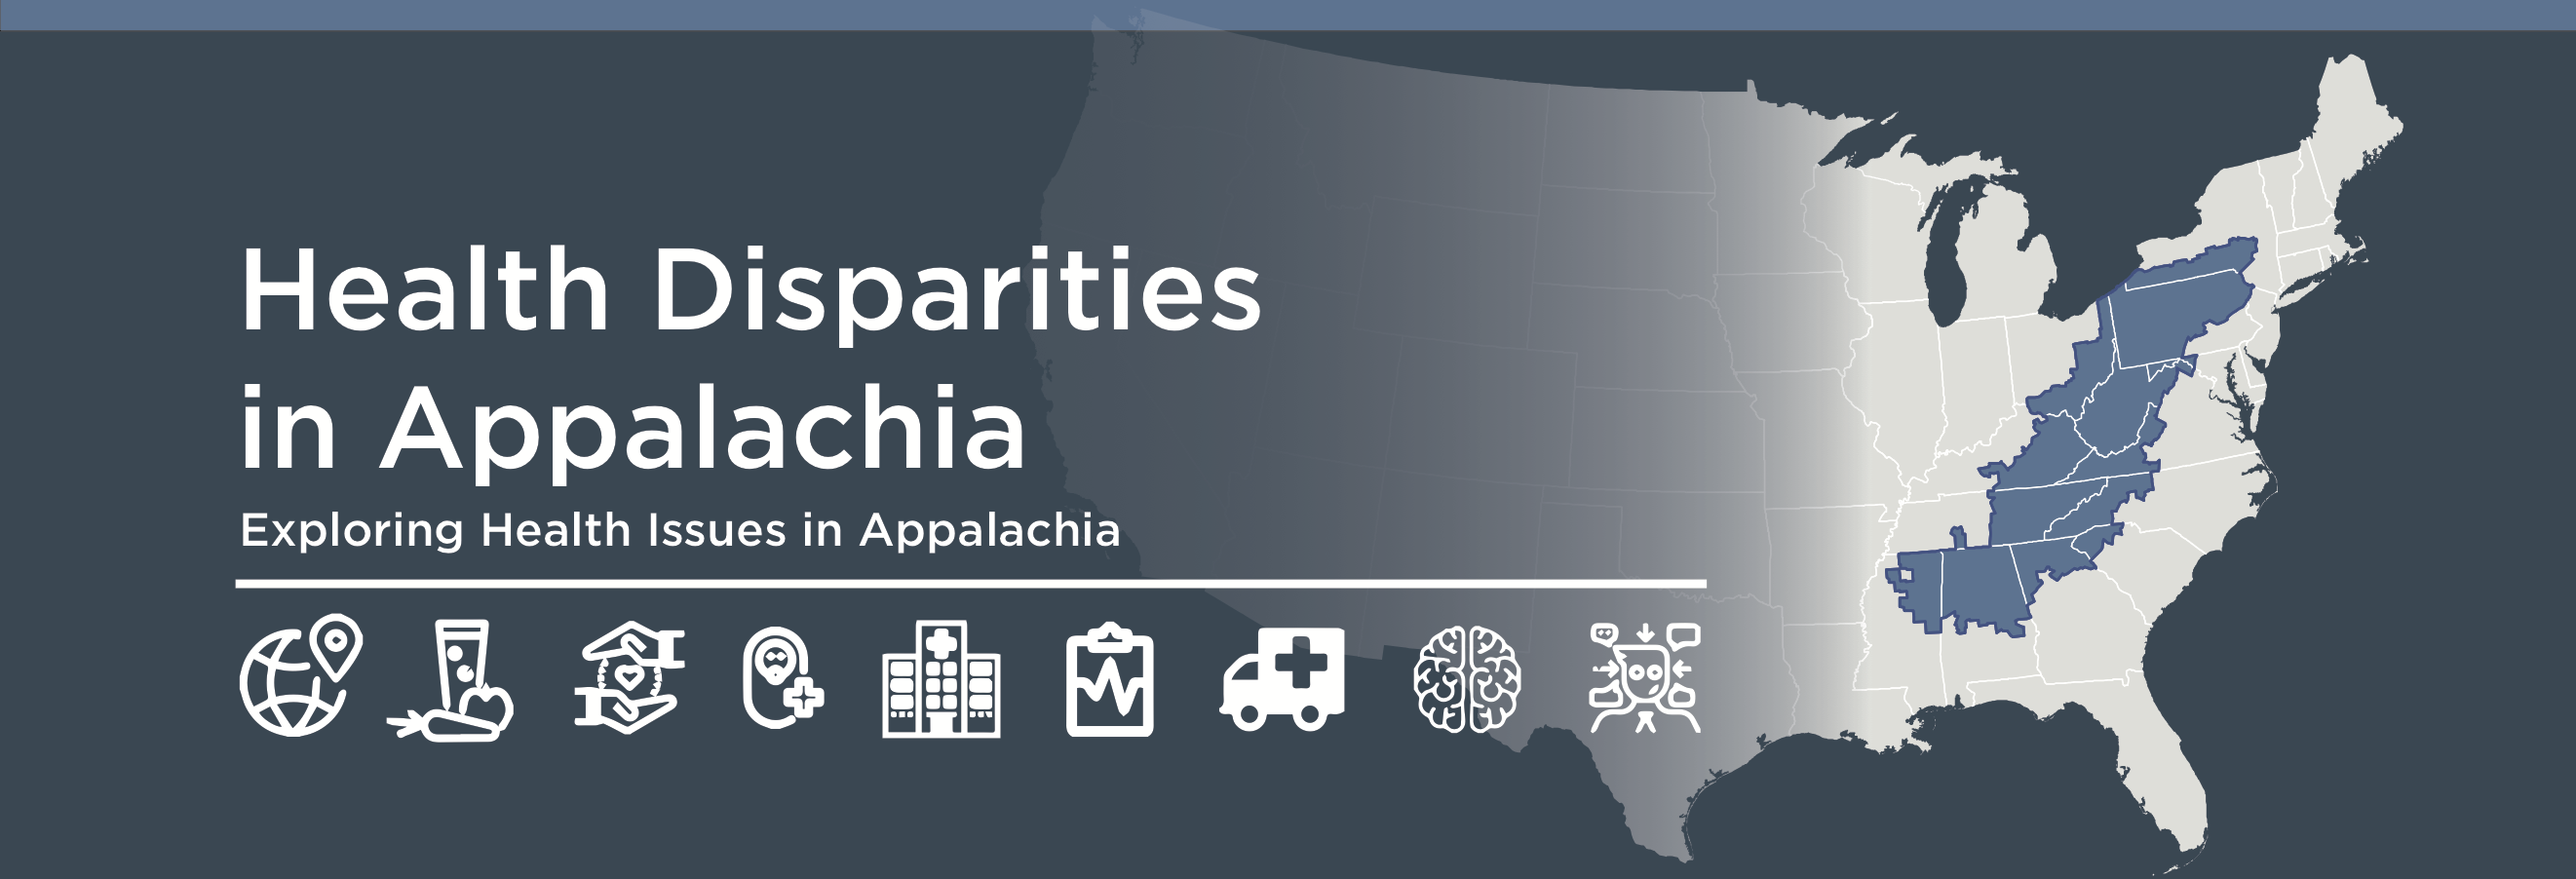 Health Disparities in Appalachia logo